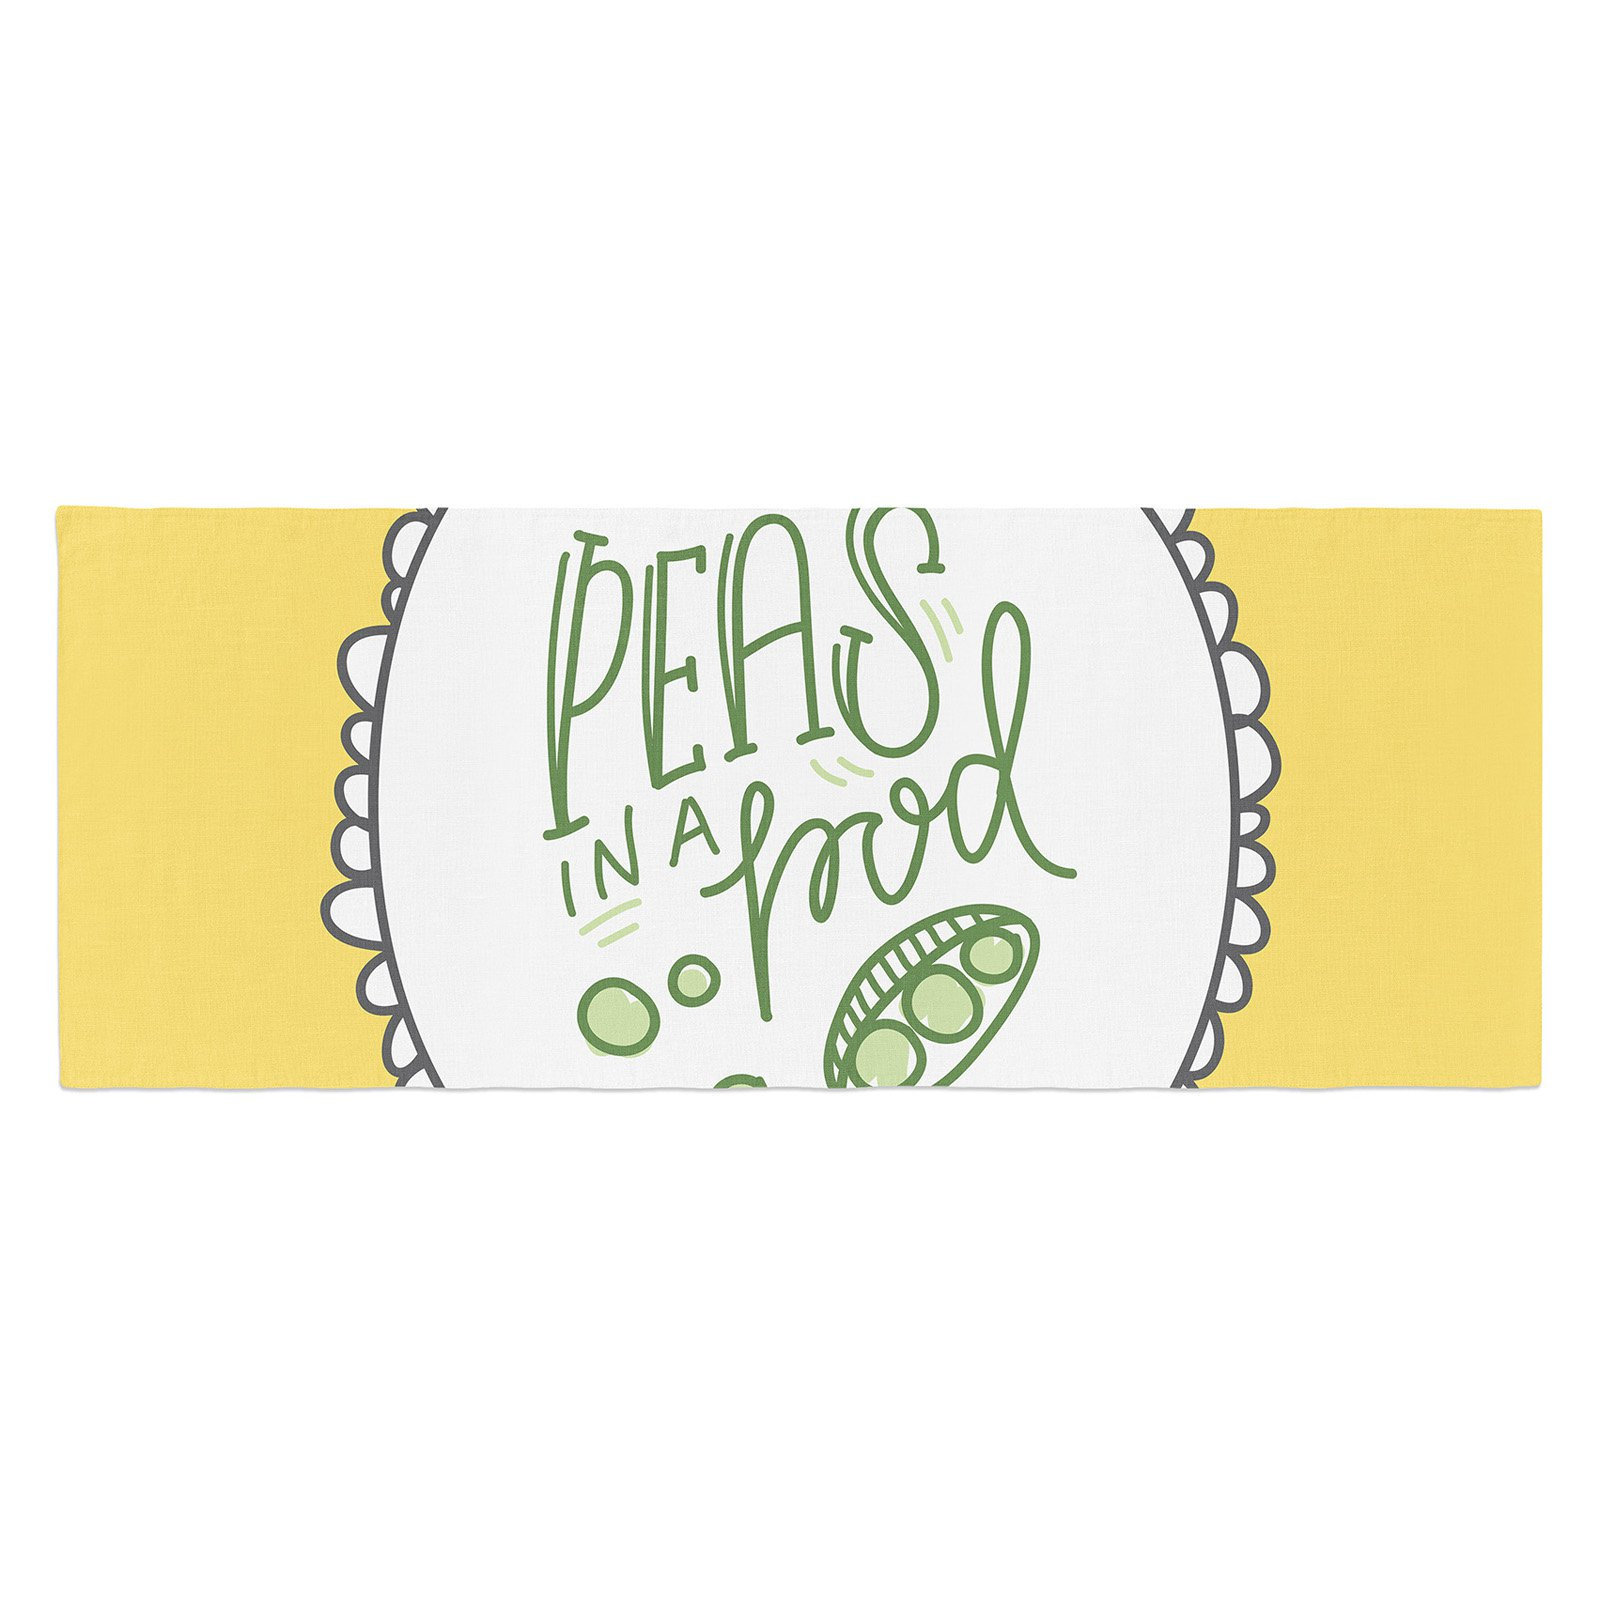 Busy Bree Peas in a Pod Bed Runner by Kess InHouse